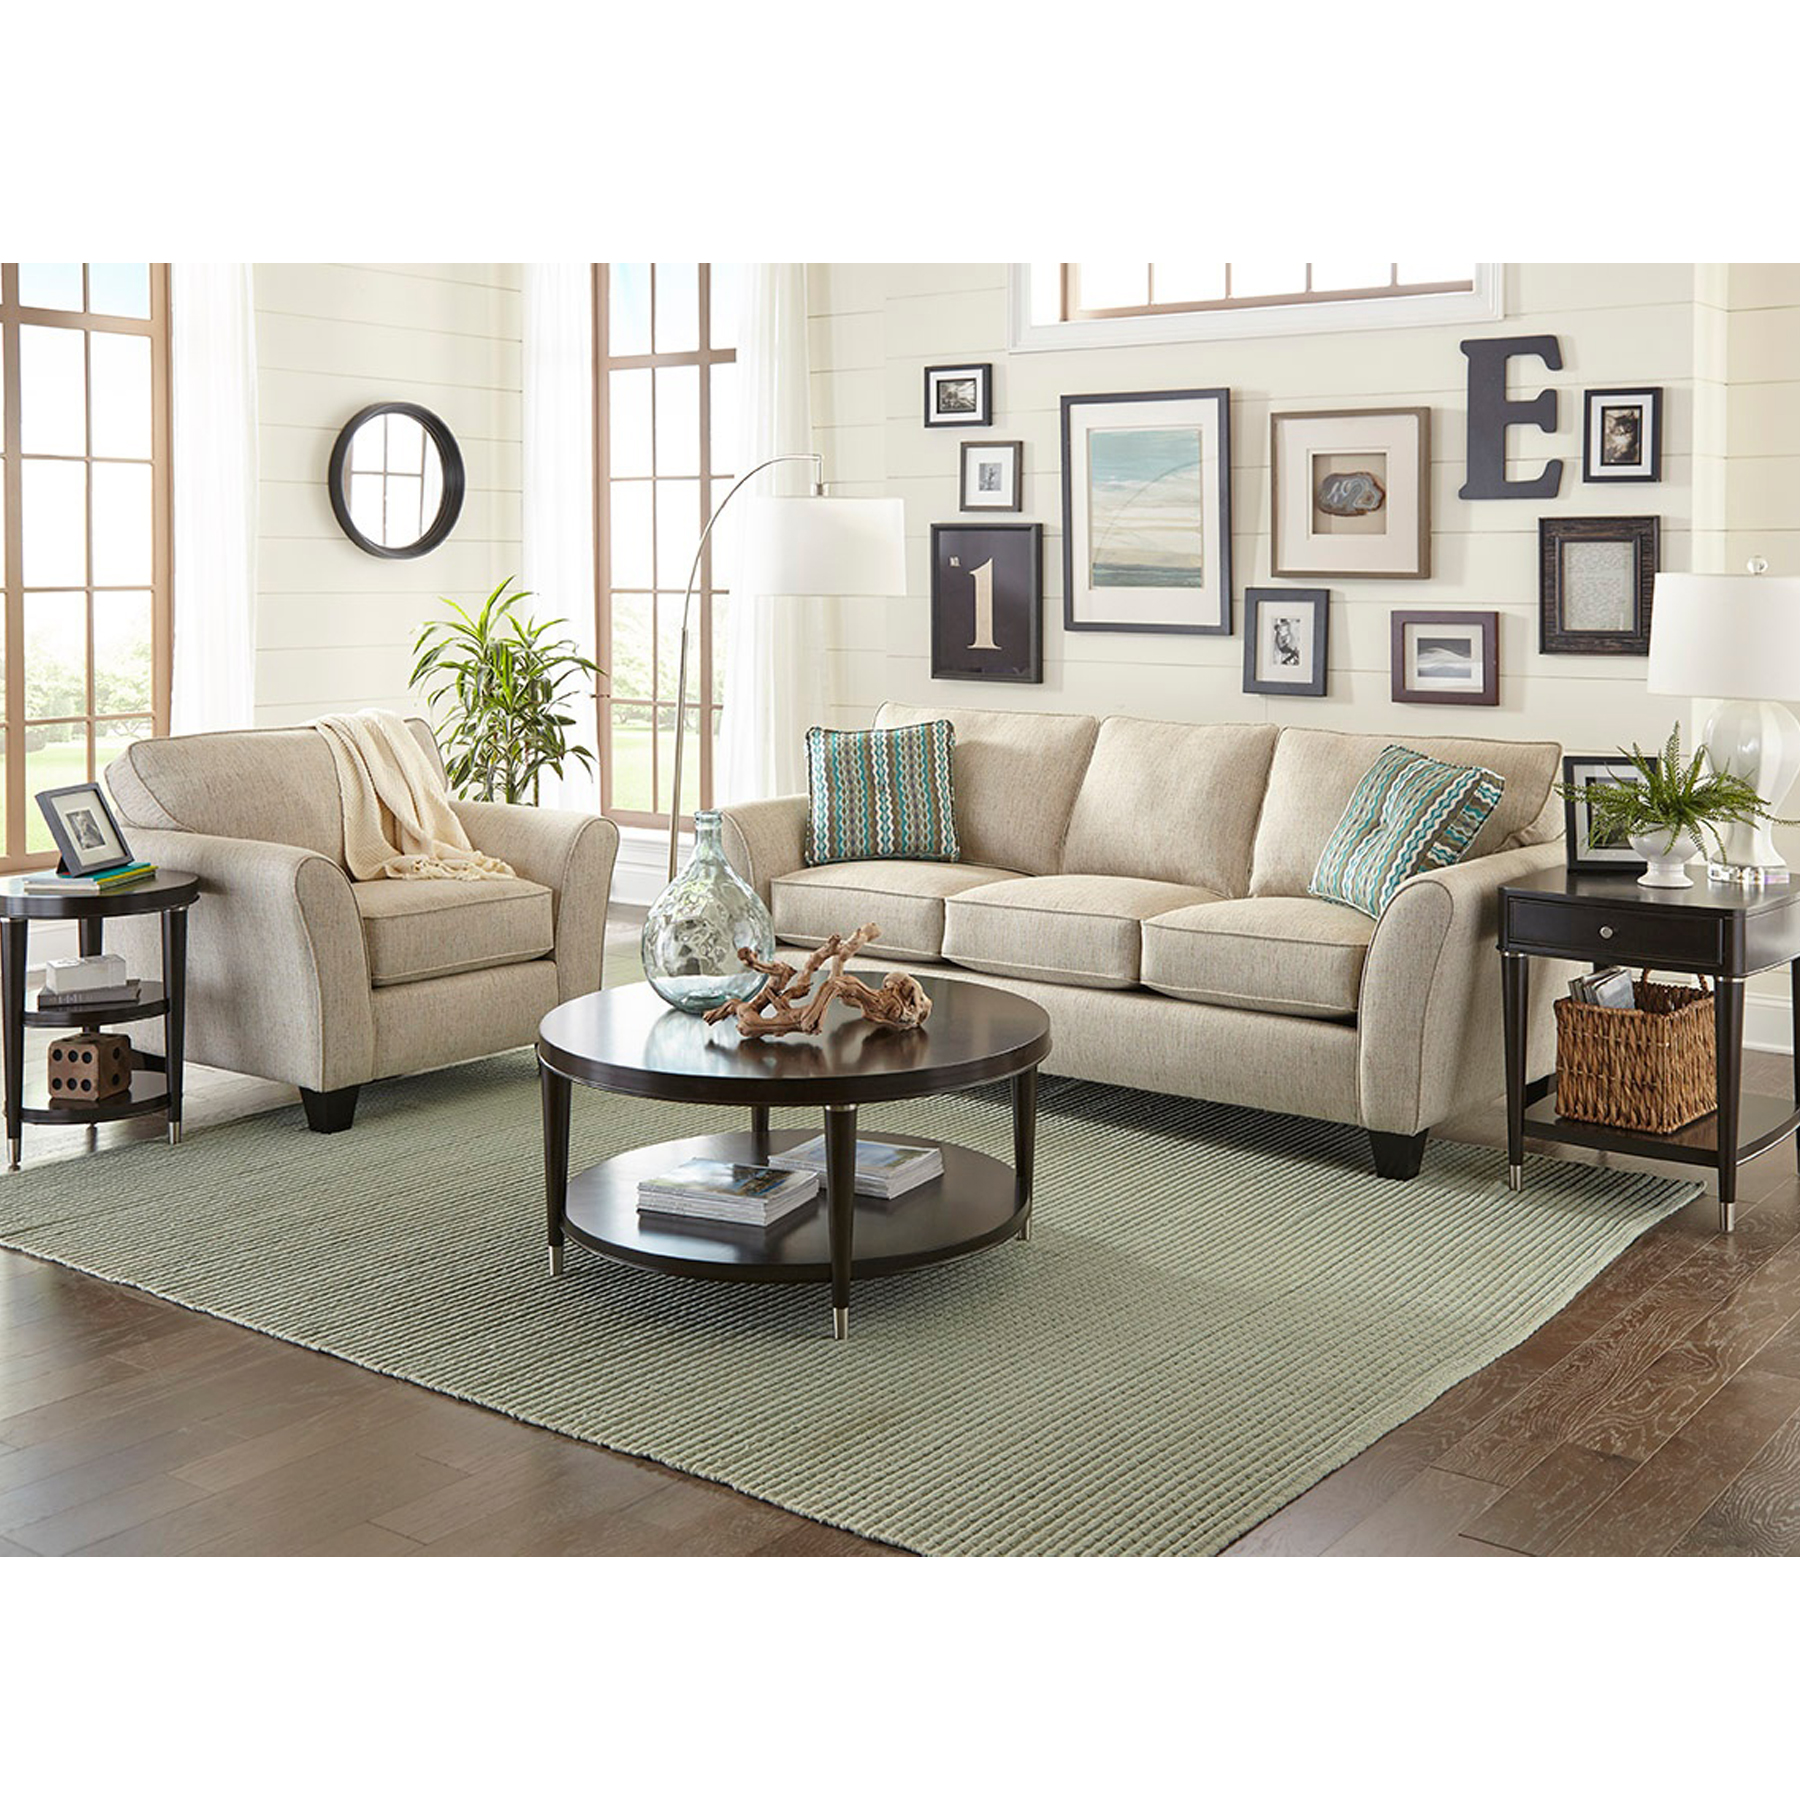 Broyhill Brown Corduroy Sofa Maddie 6517 Sofa Collection Customize 350 Sofas And Sectionals